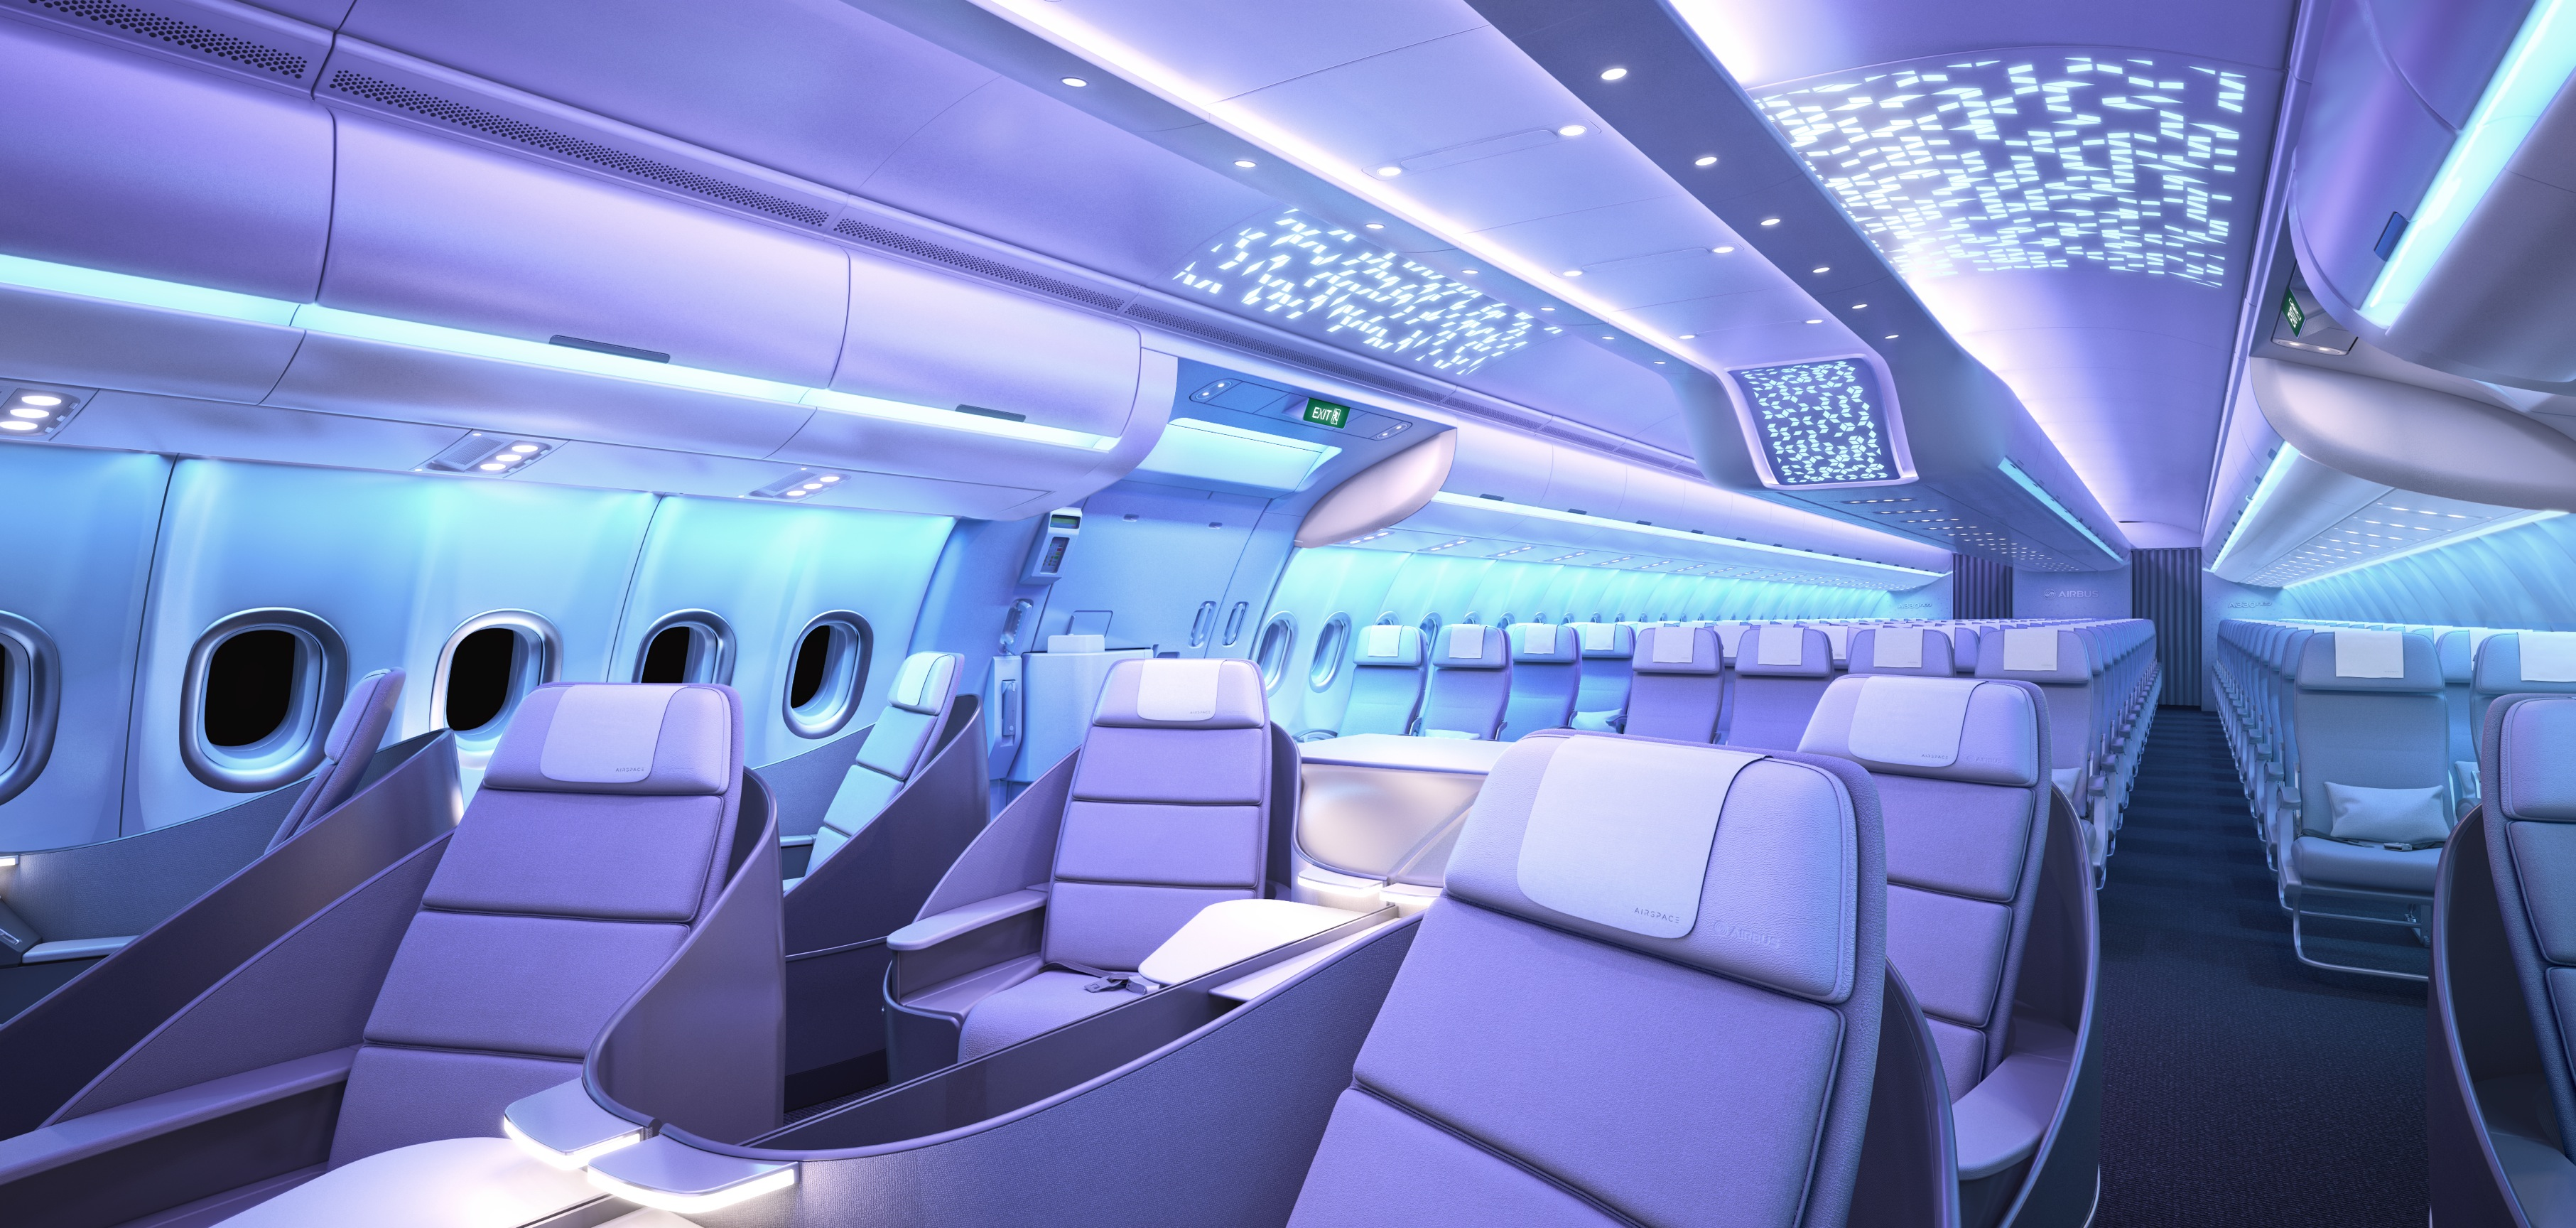 Interieur D'un Avion Xl Airways An Airbus Success Story 10 000 Aircraft And Continual Growth